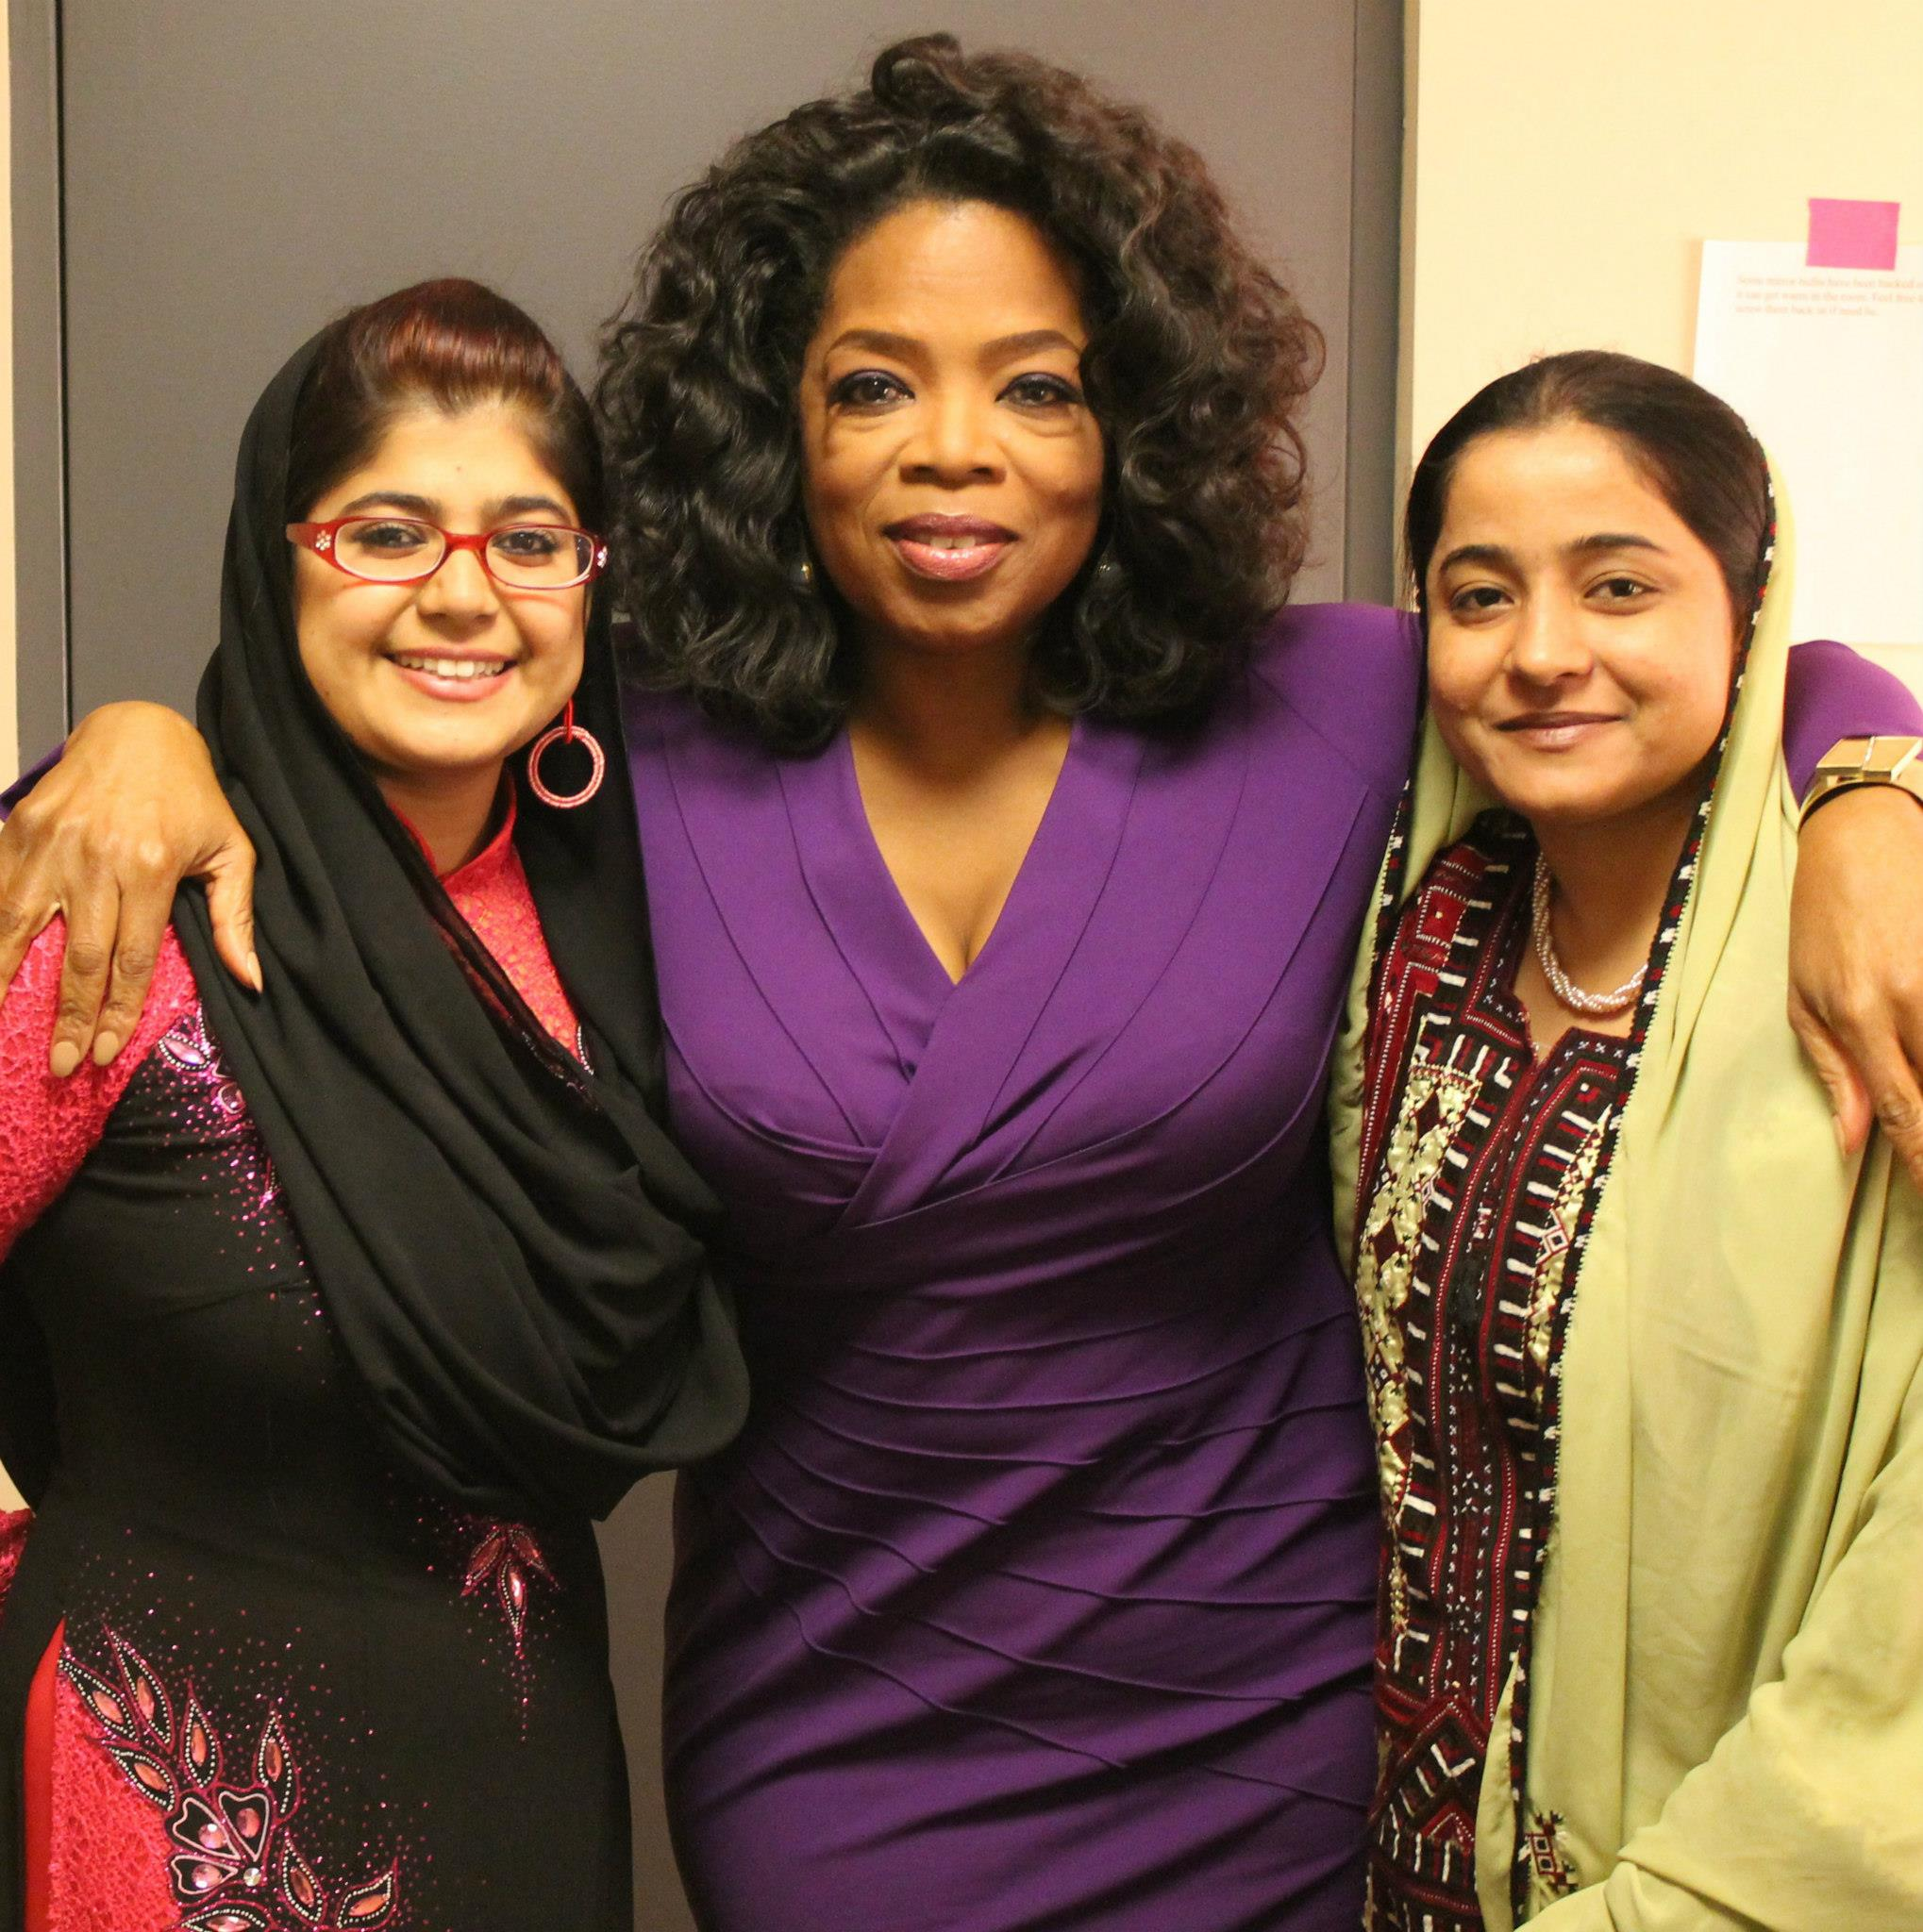 oprah winfrey impact to society What are the significant contributions has oprah winfrey made to society in a 1997 episode of the oprah winfrey show, oprah encouraged viewers to.